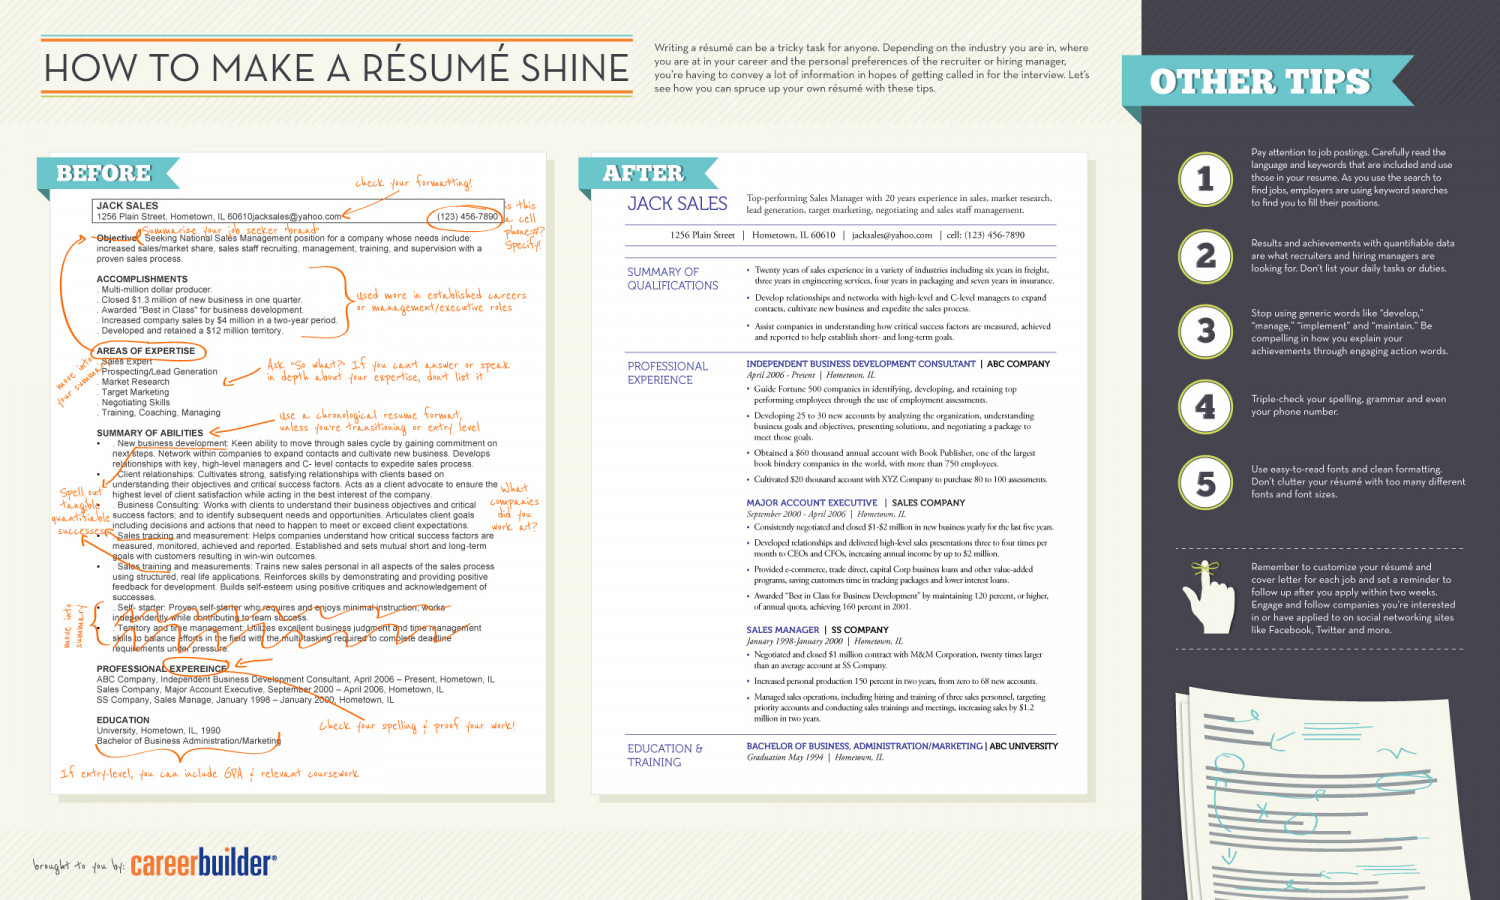 how to make a résumé shine visual ly how to make a résumé shine infographic